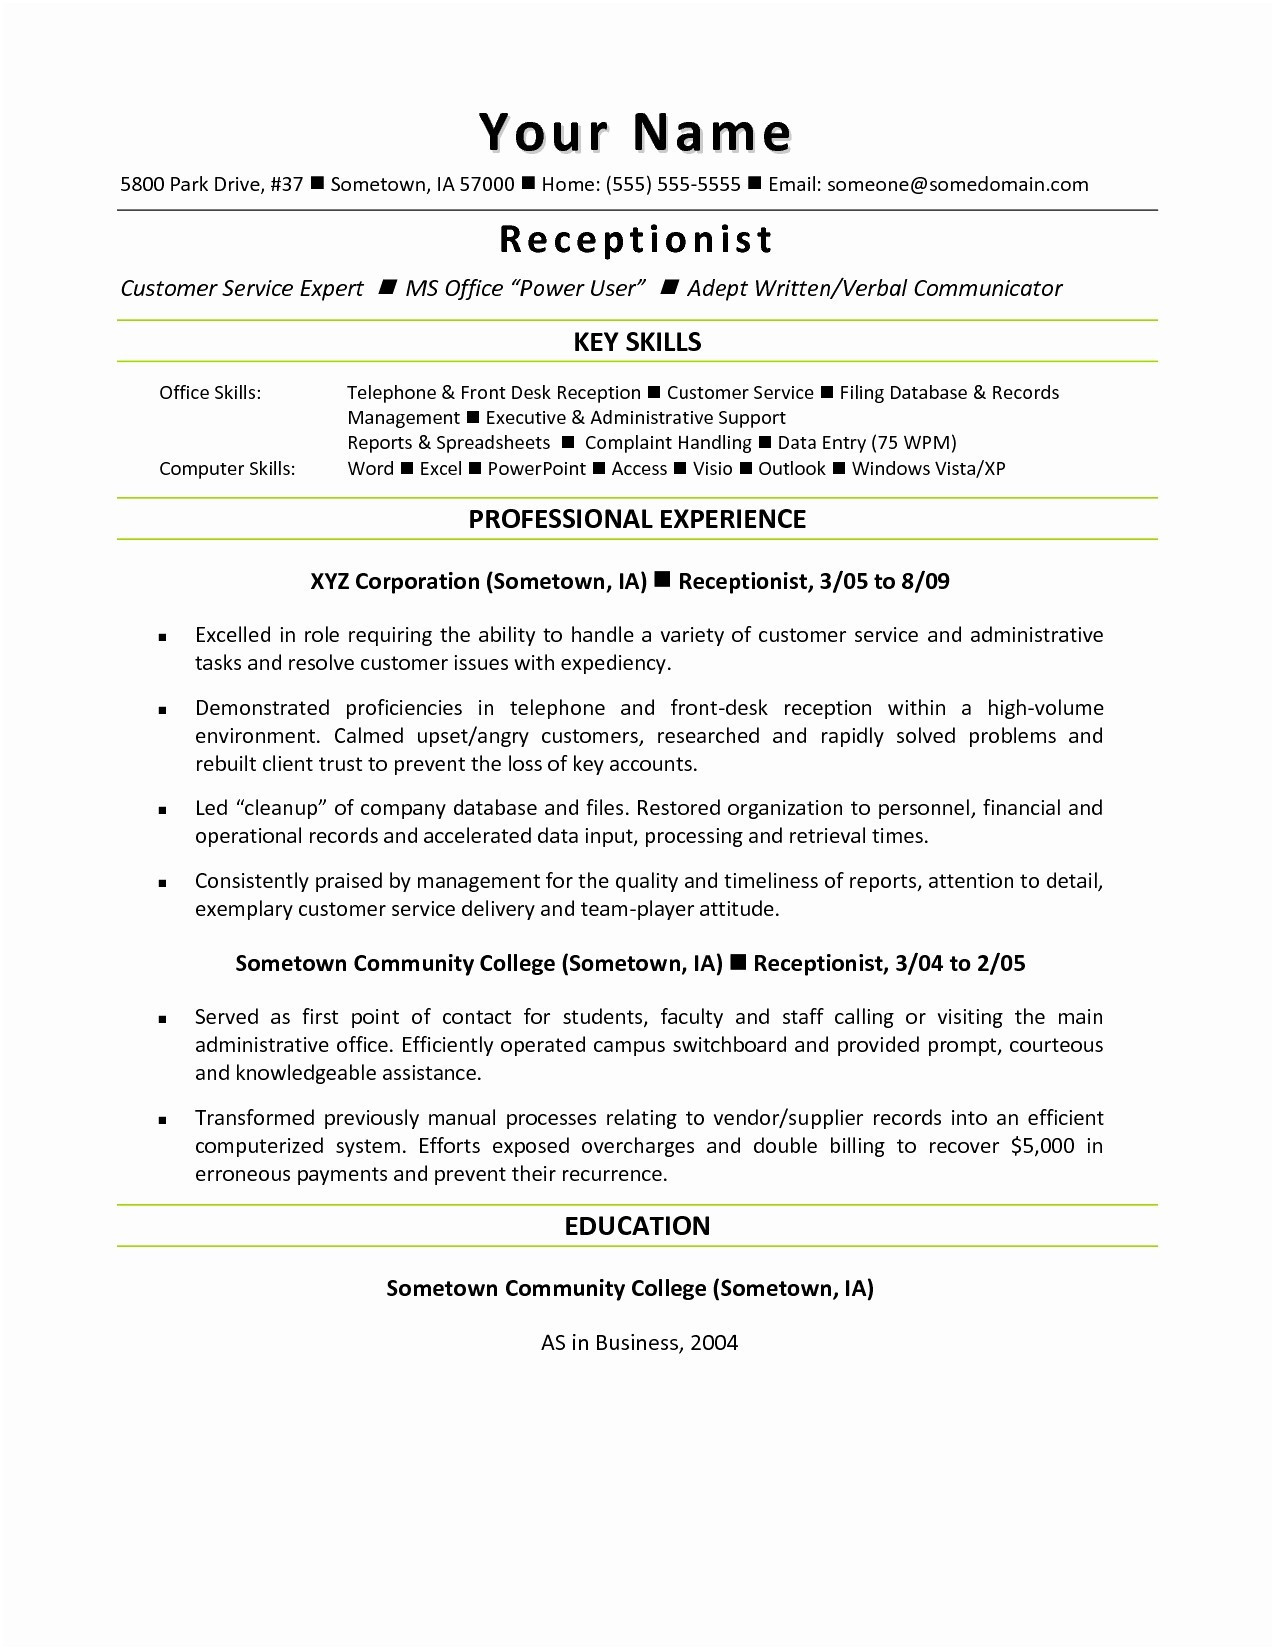 Executive Cover Letter Template - Resume Templates Microsoft Mail format Sample Fresh Beautiful Od